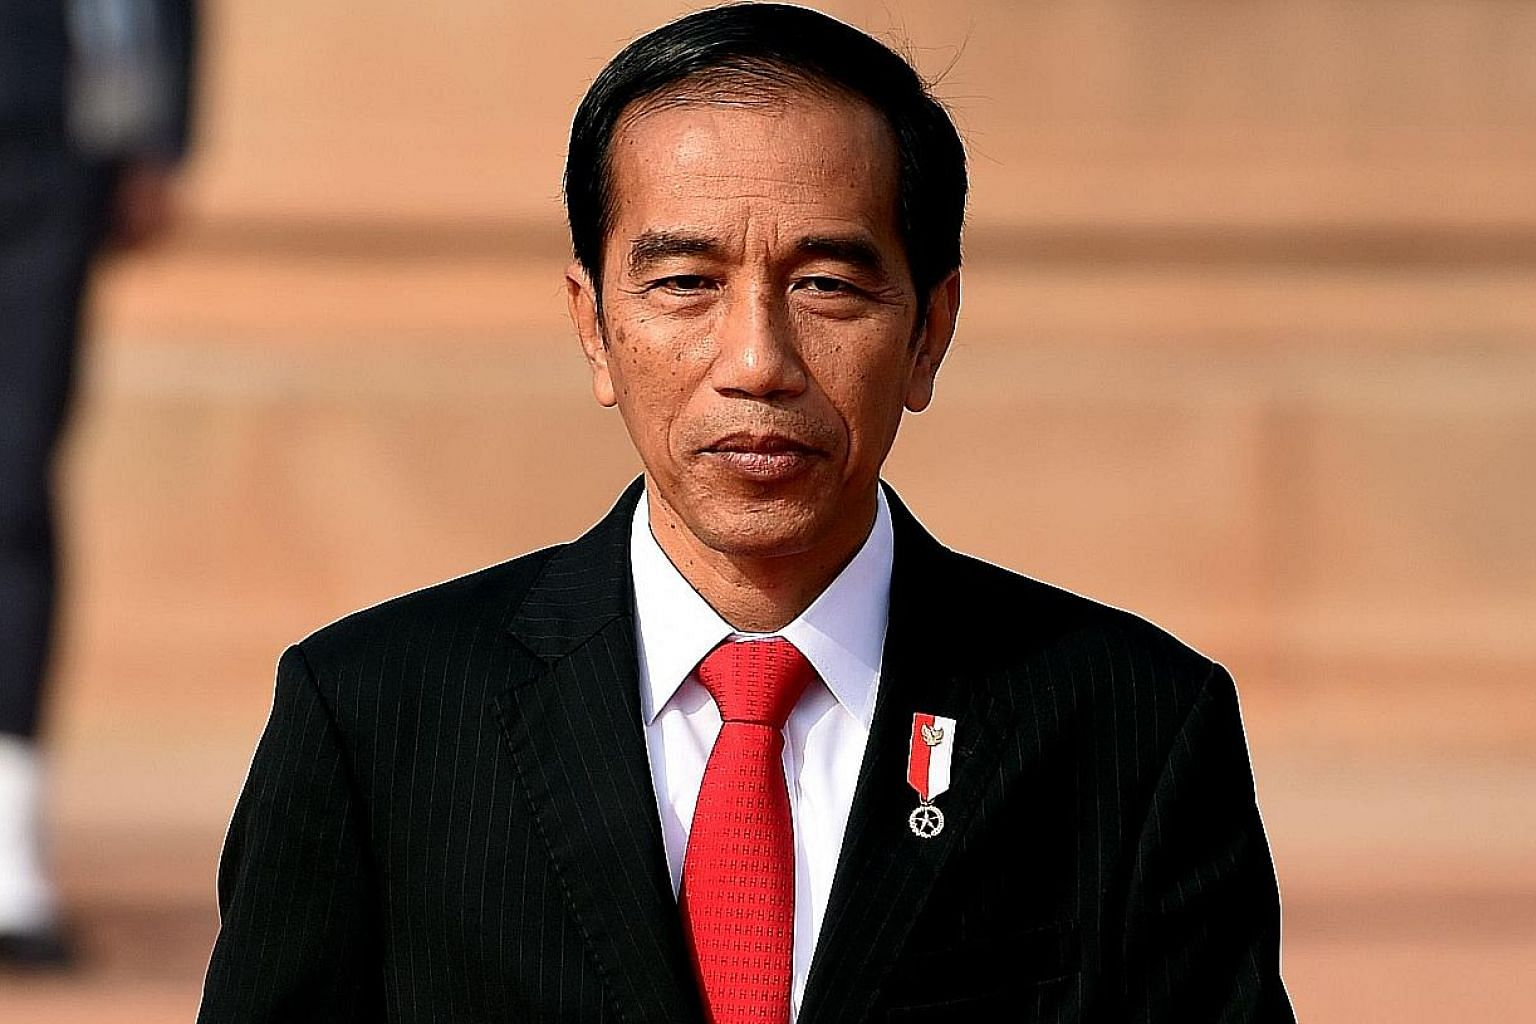 Mr Joko is likely to make a far-reaching push for closer military and economic ties with Australia.